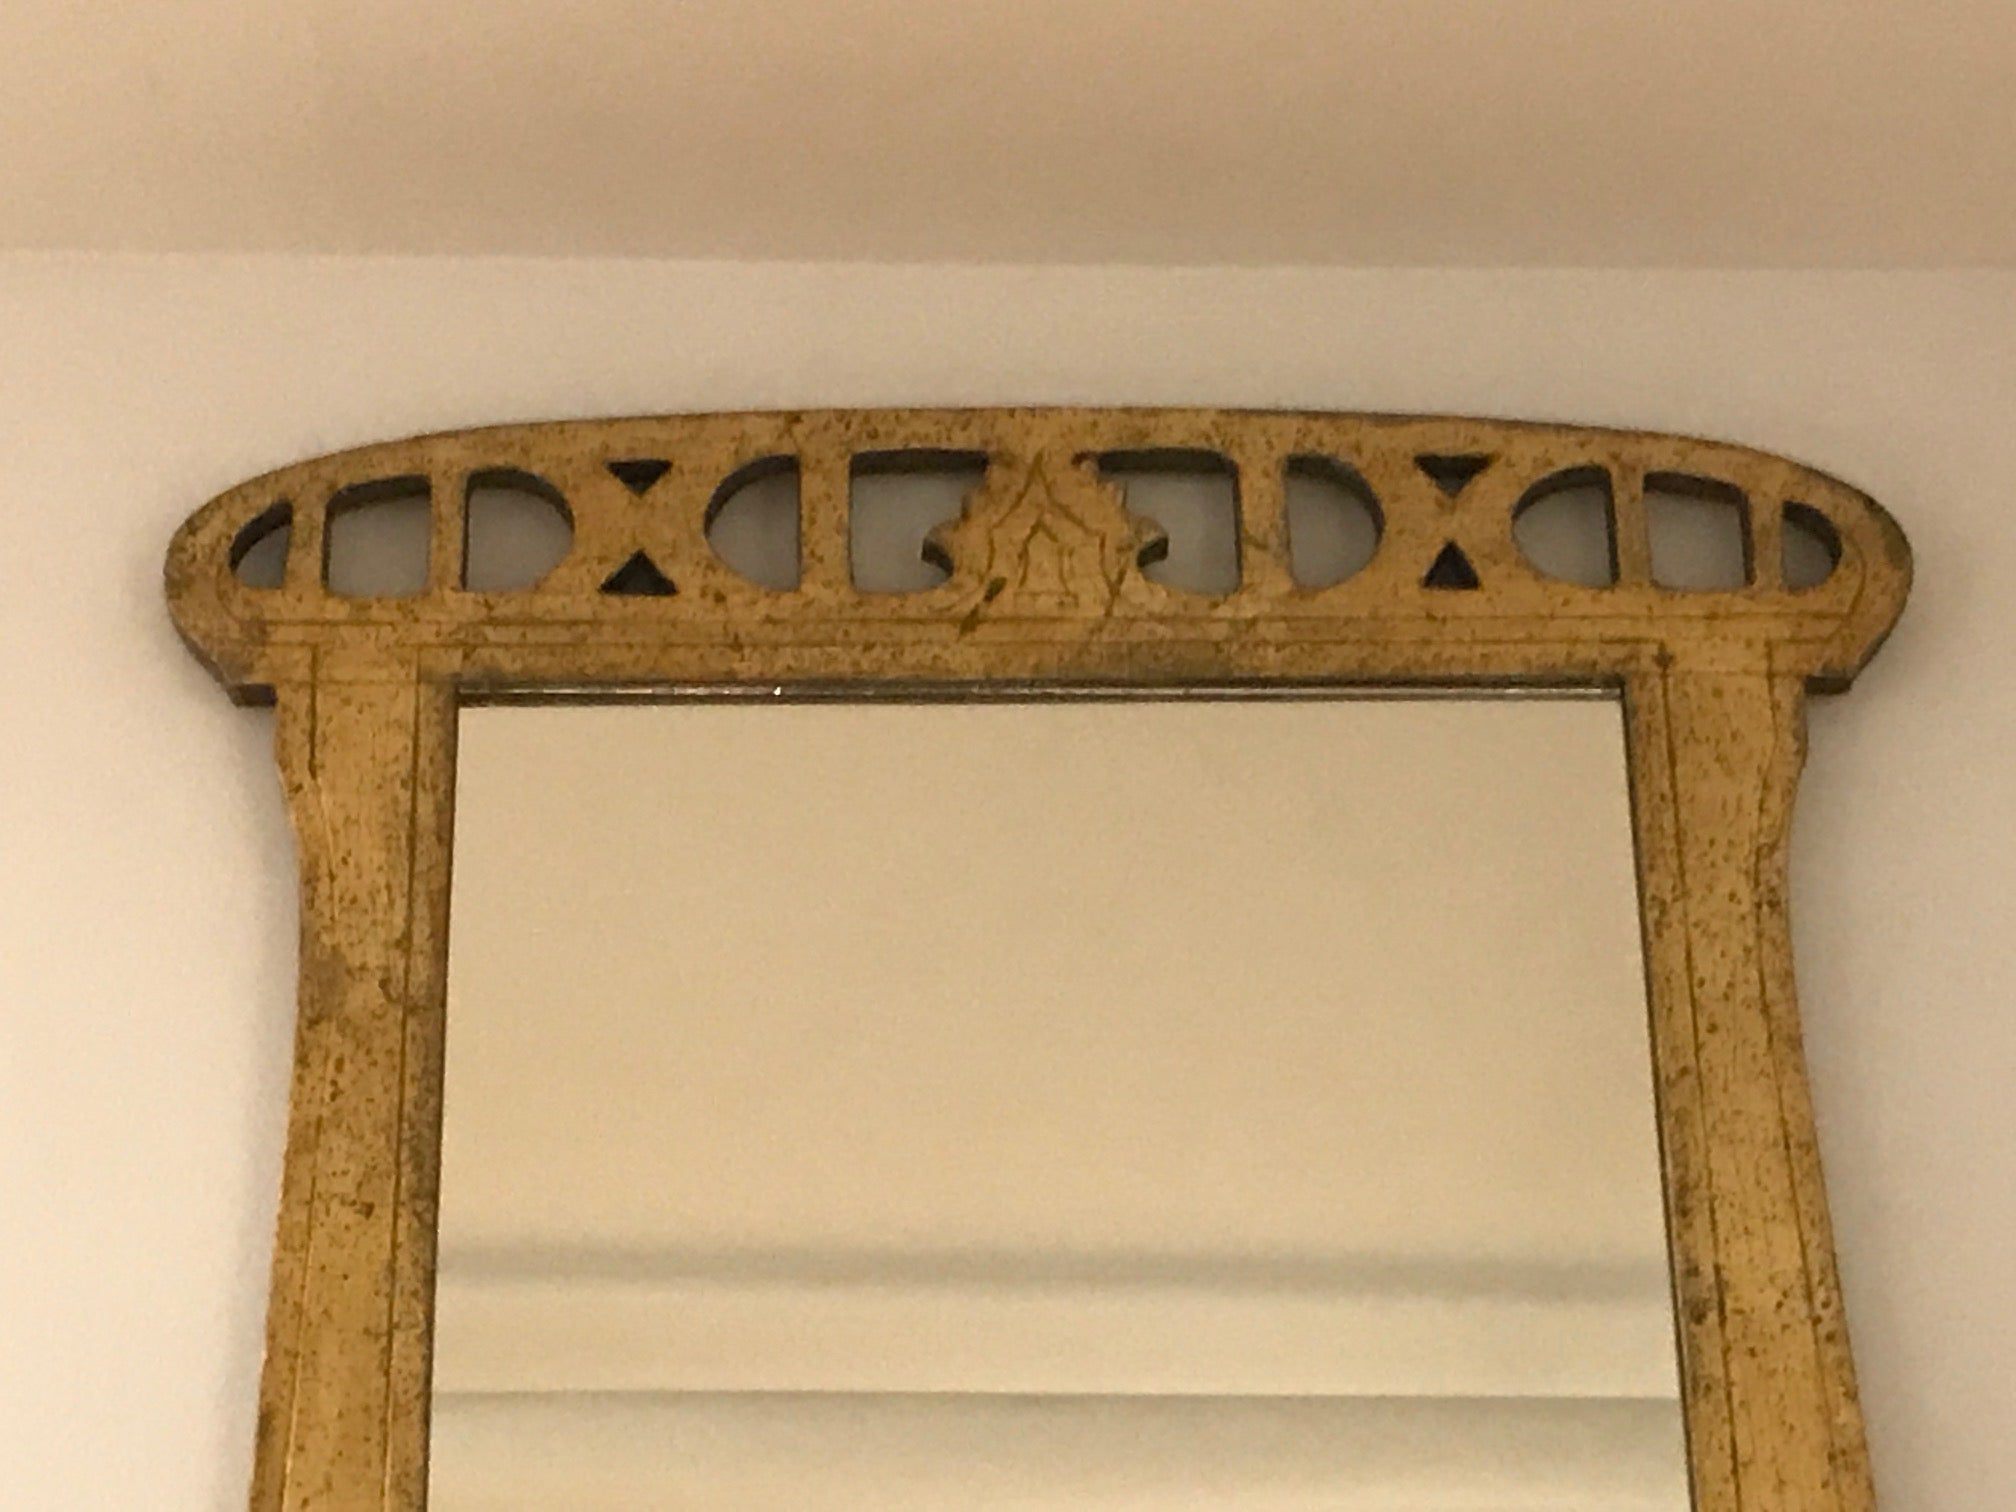 Early 20th Century Art Nouveau Mirror For Sale at 1stdibs